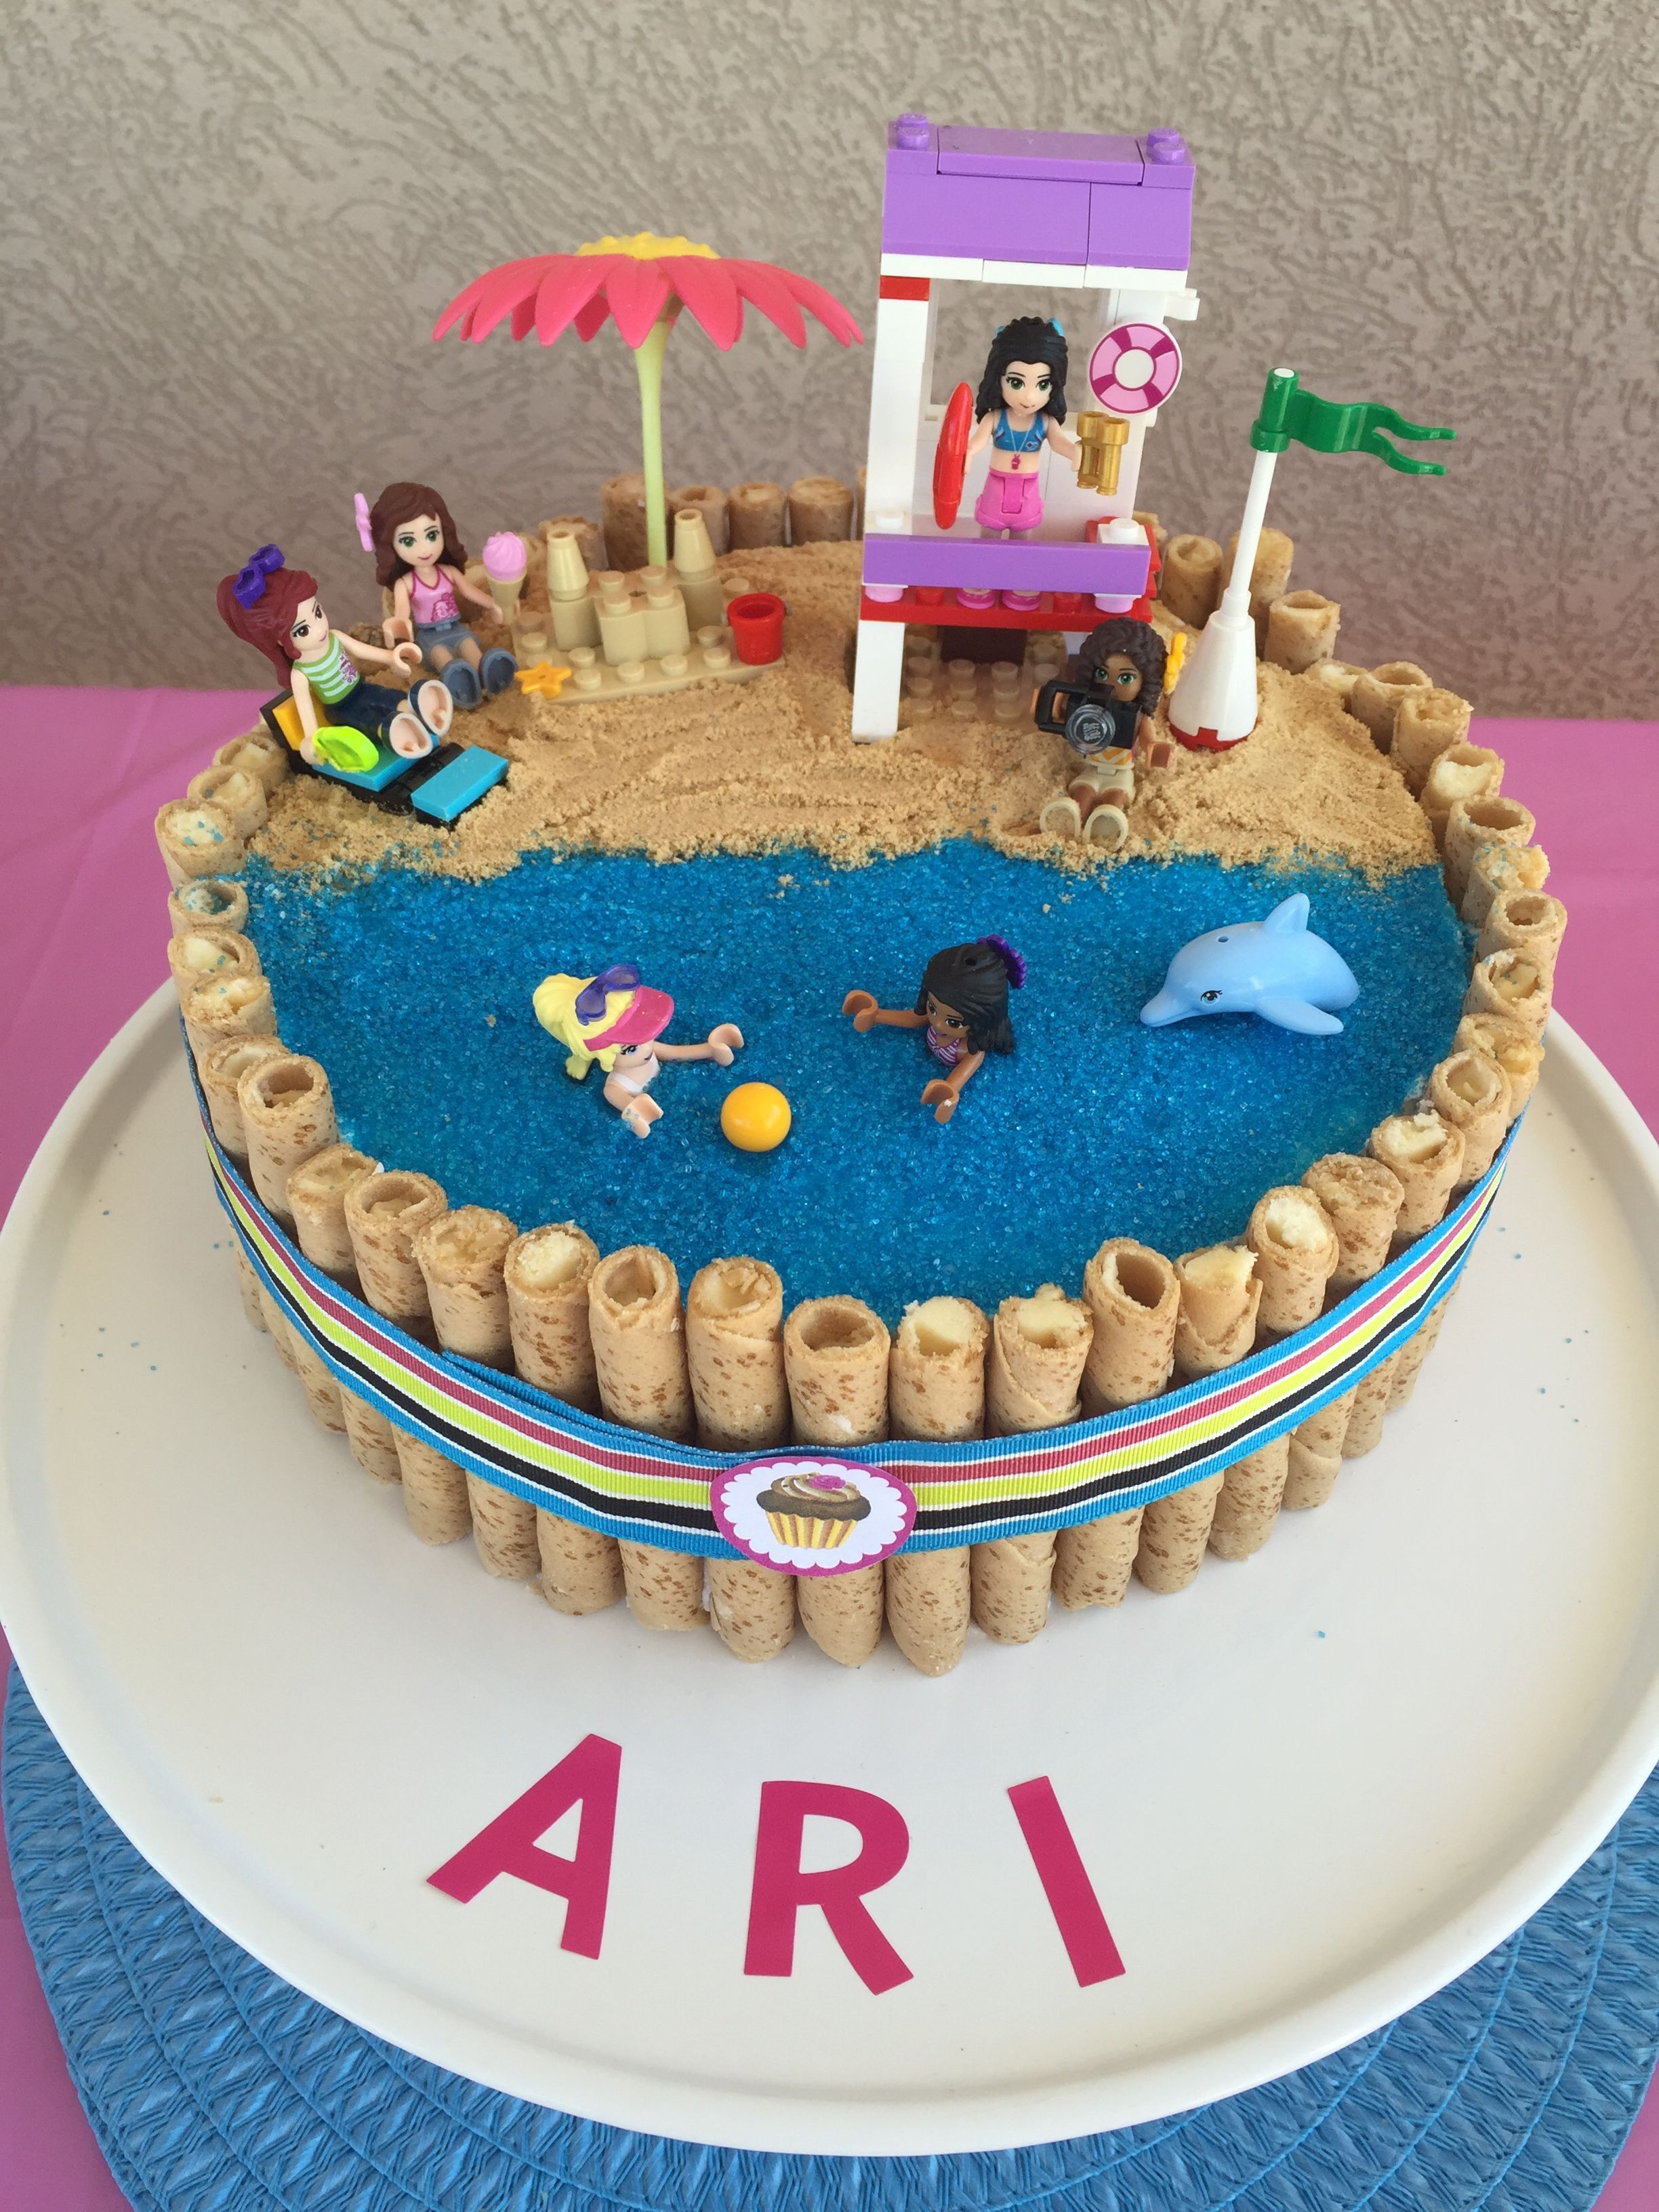 Image Result For Lego Friends Cake Birthday Cakes In 2018